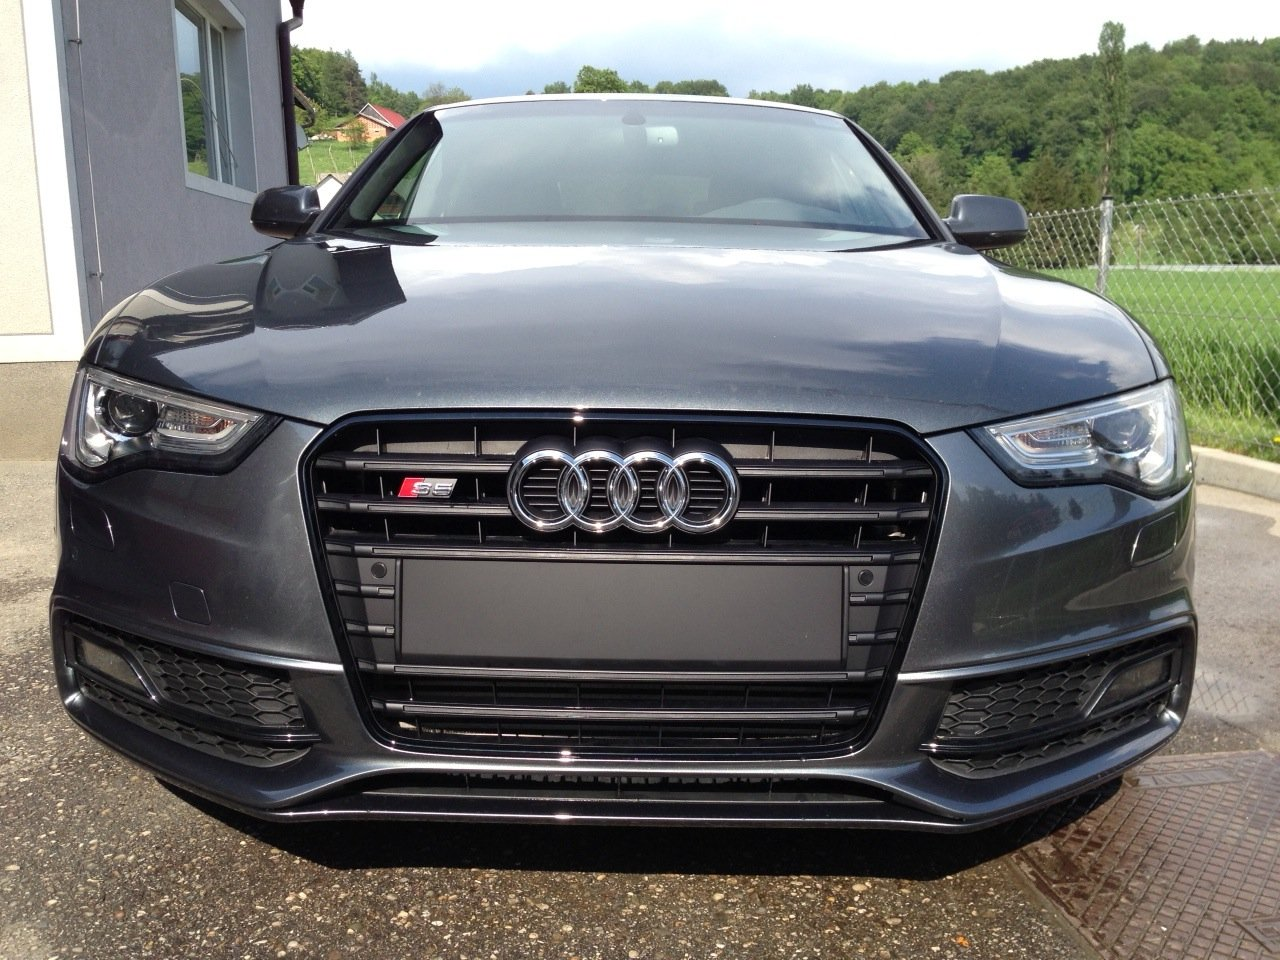 Black edition s5 grille attached thumbnails click image for larger version name img_7233 copy jpg views 9971 size